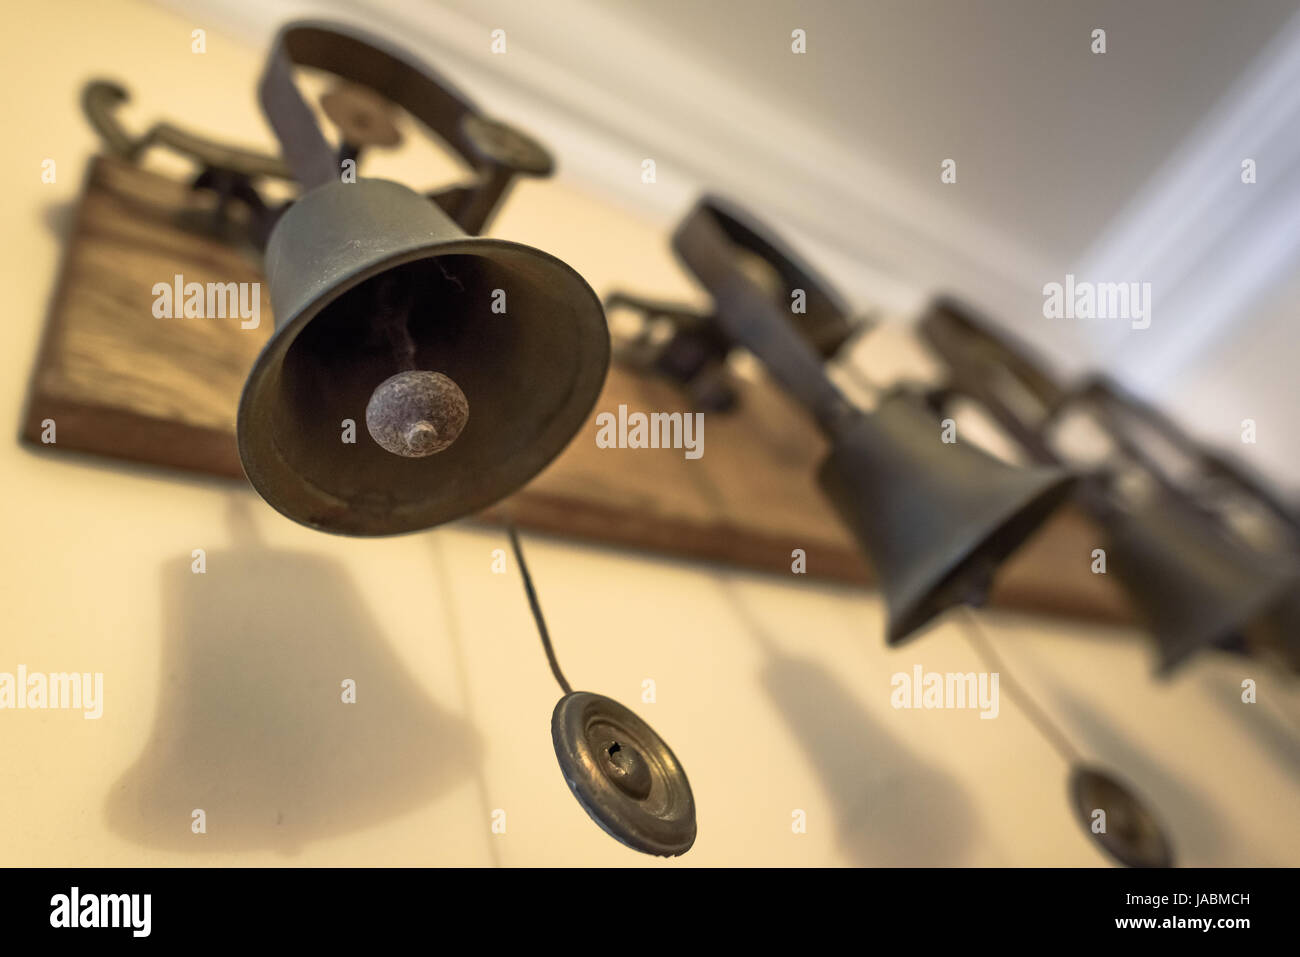 Servant's bells in a large old house. - Stock Image